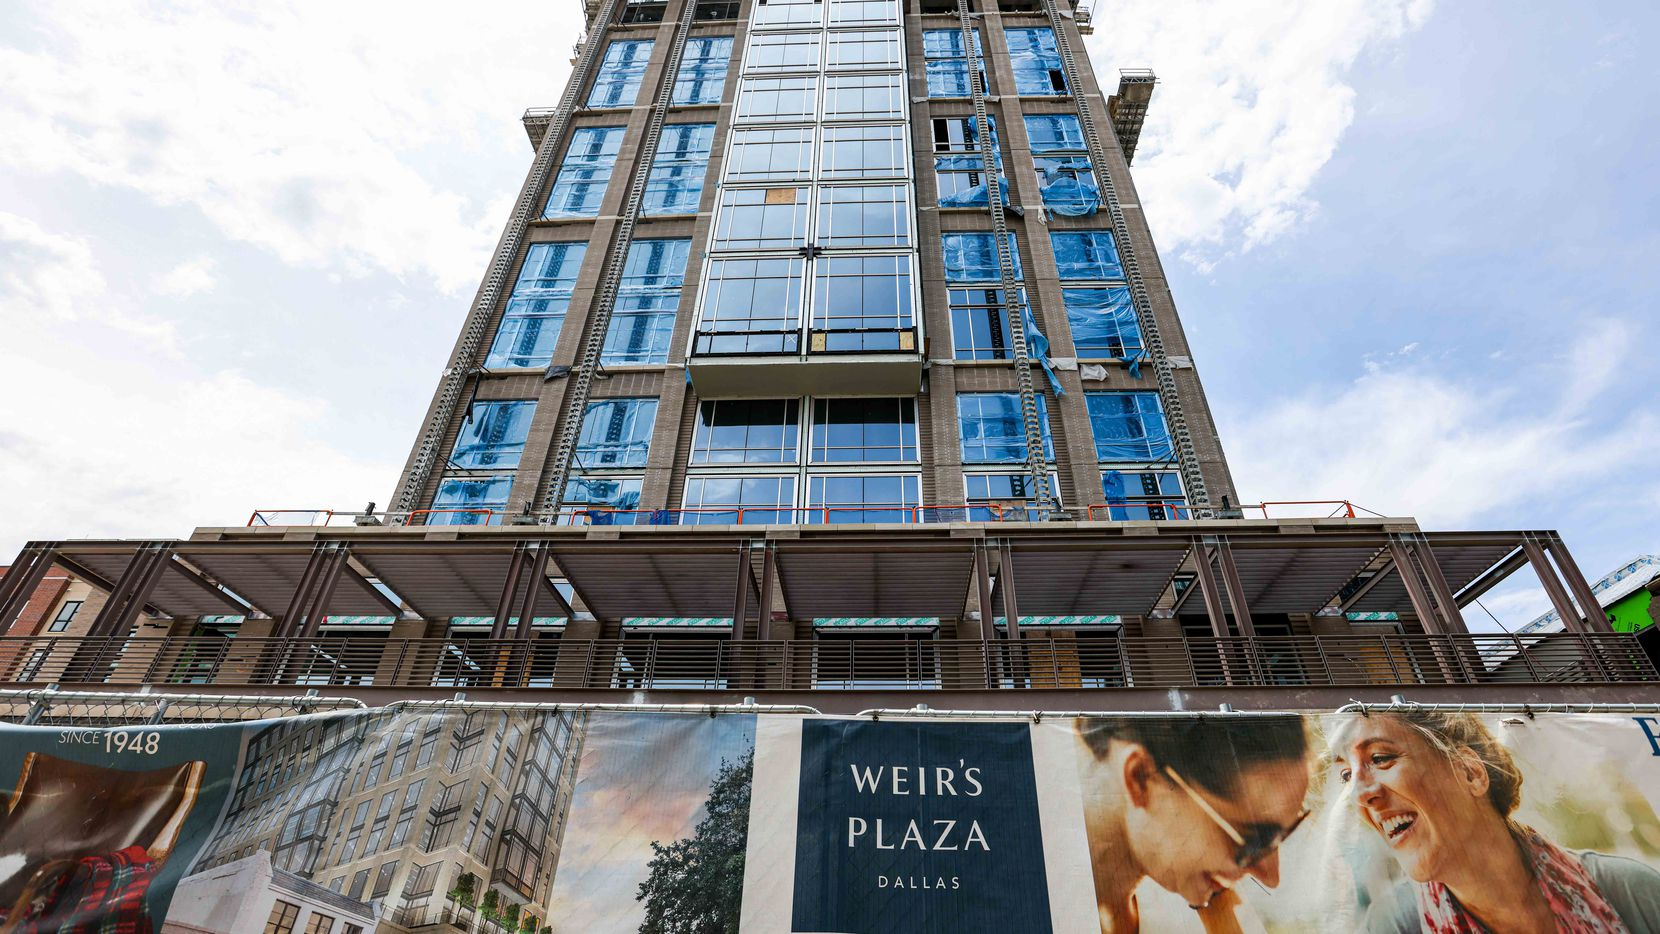 Weir's Plaza will include office, retail and a new Weir's Furniture store.